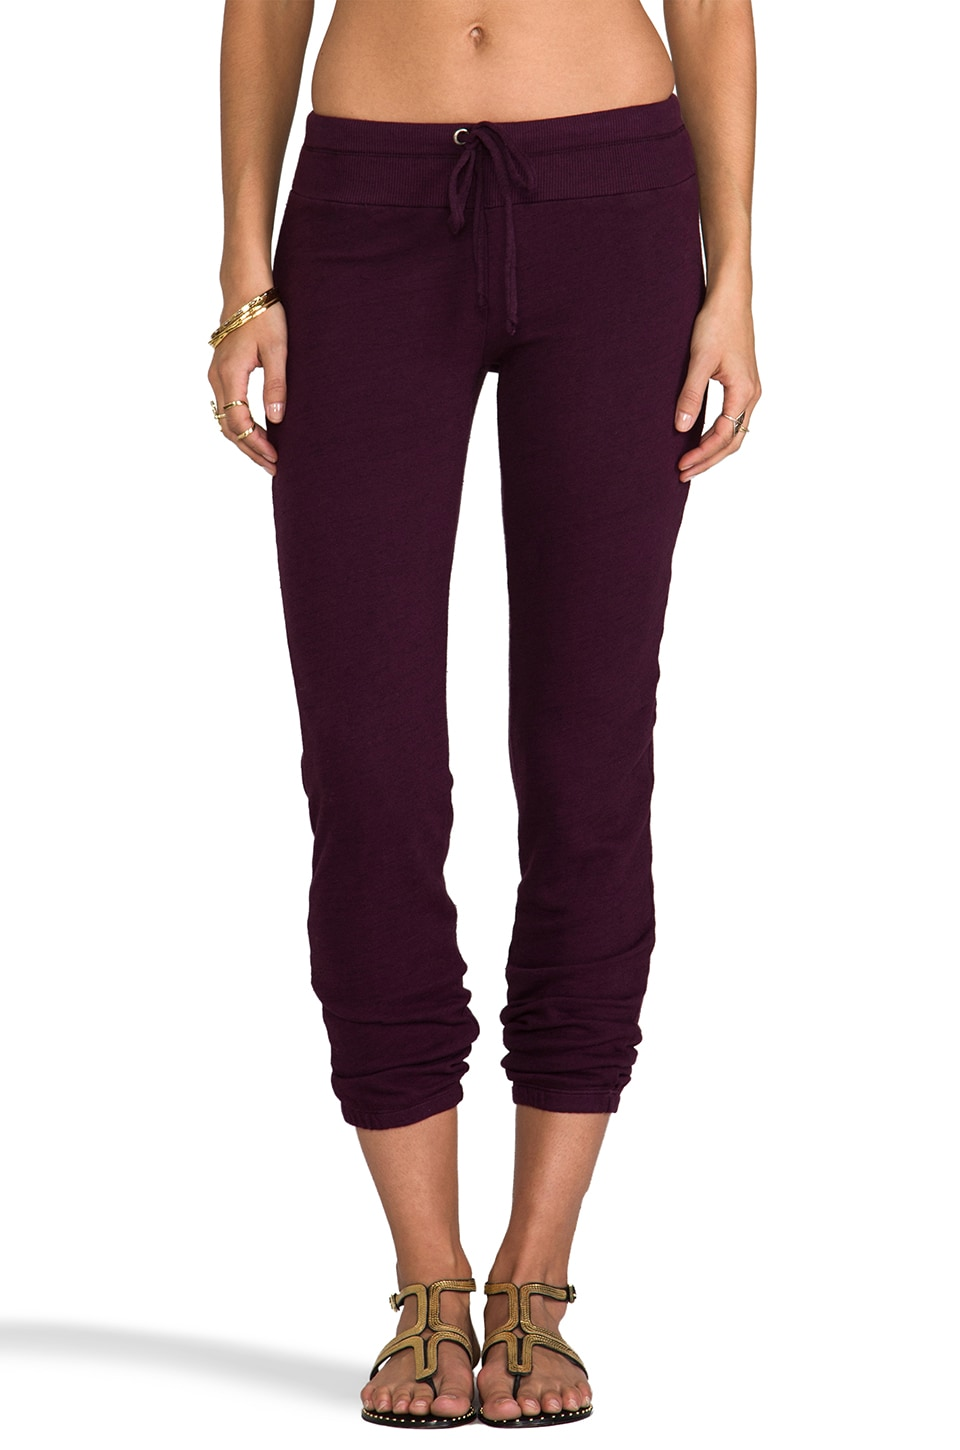 Splendid Space-Dyed Heather Active Sweatpant in Eggplant